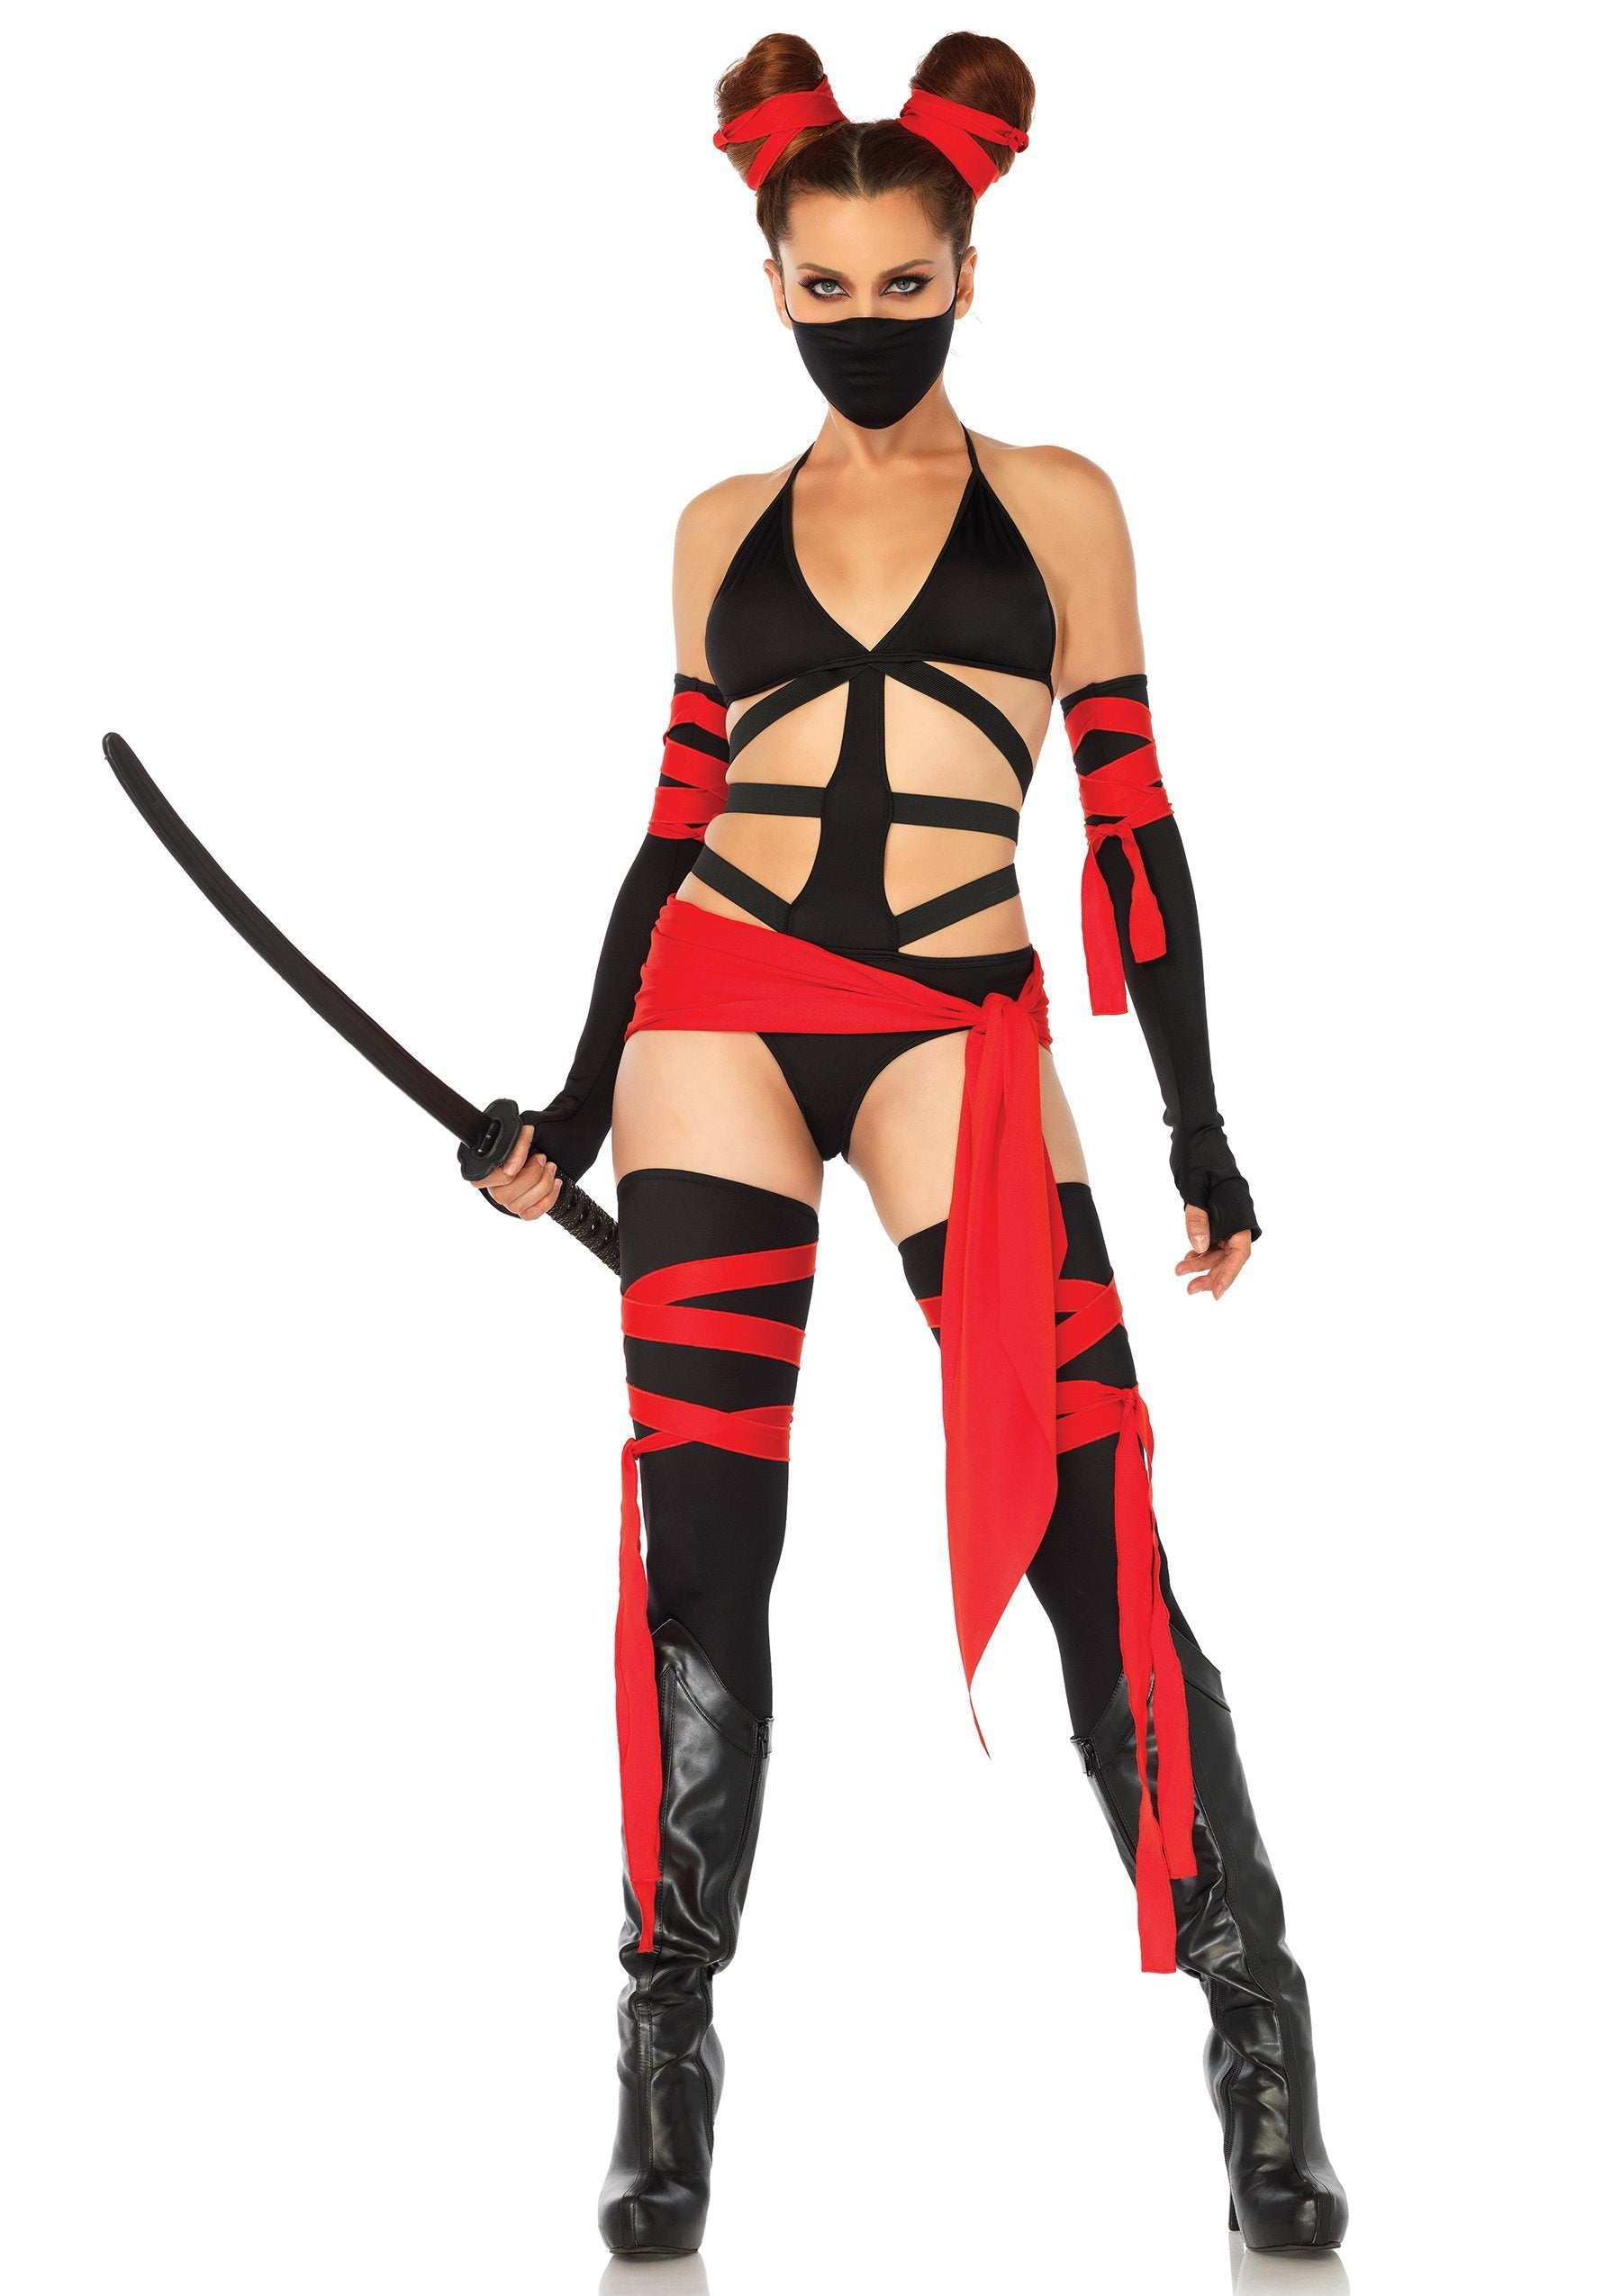 Leg Avenue Costumes MEDIUM Killer Ninja Costume